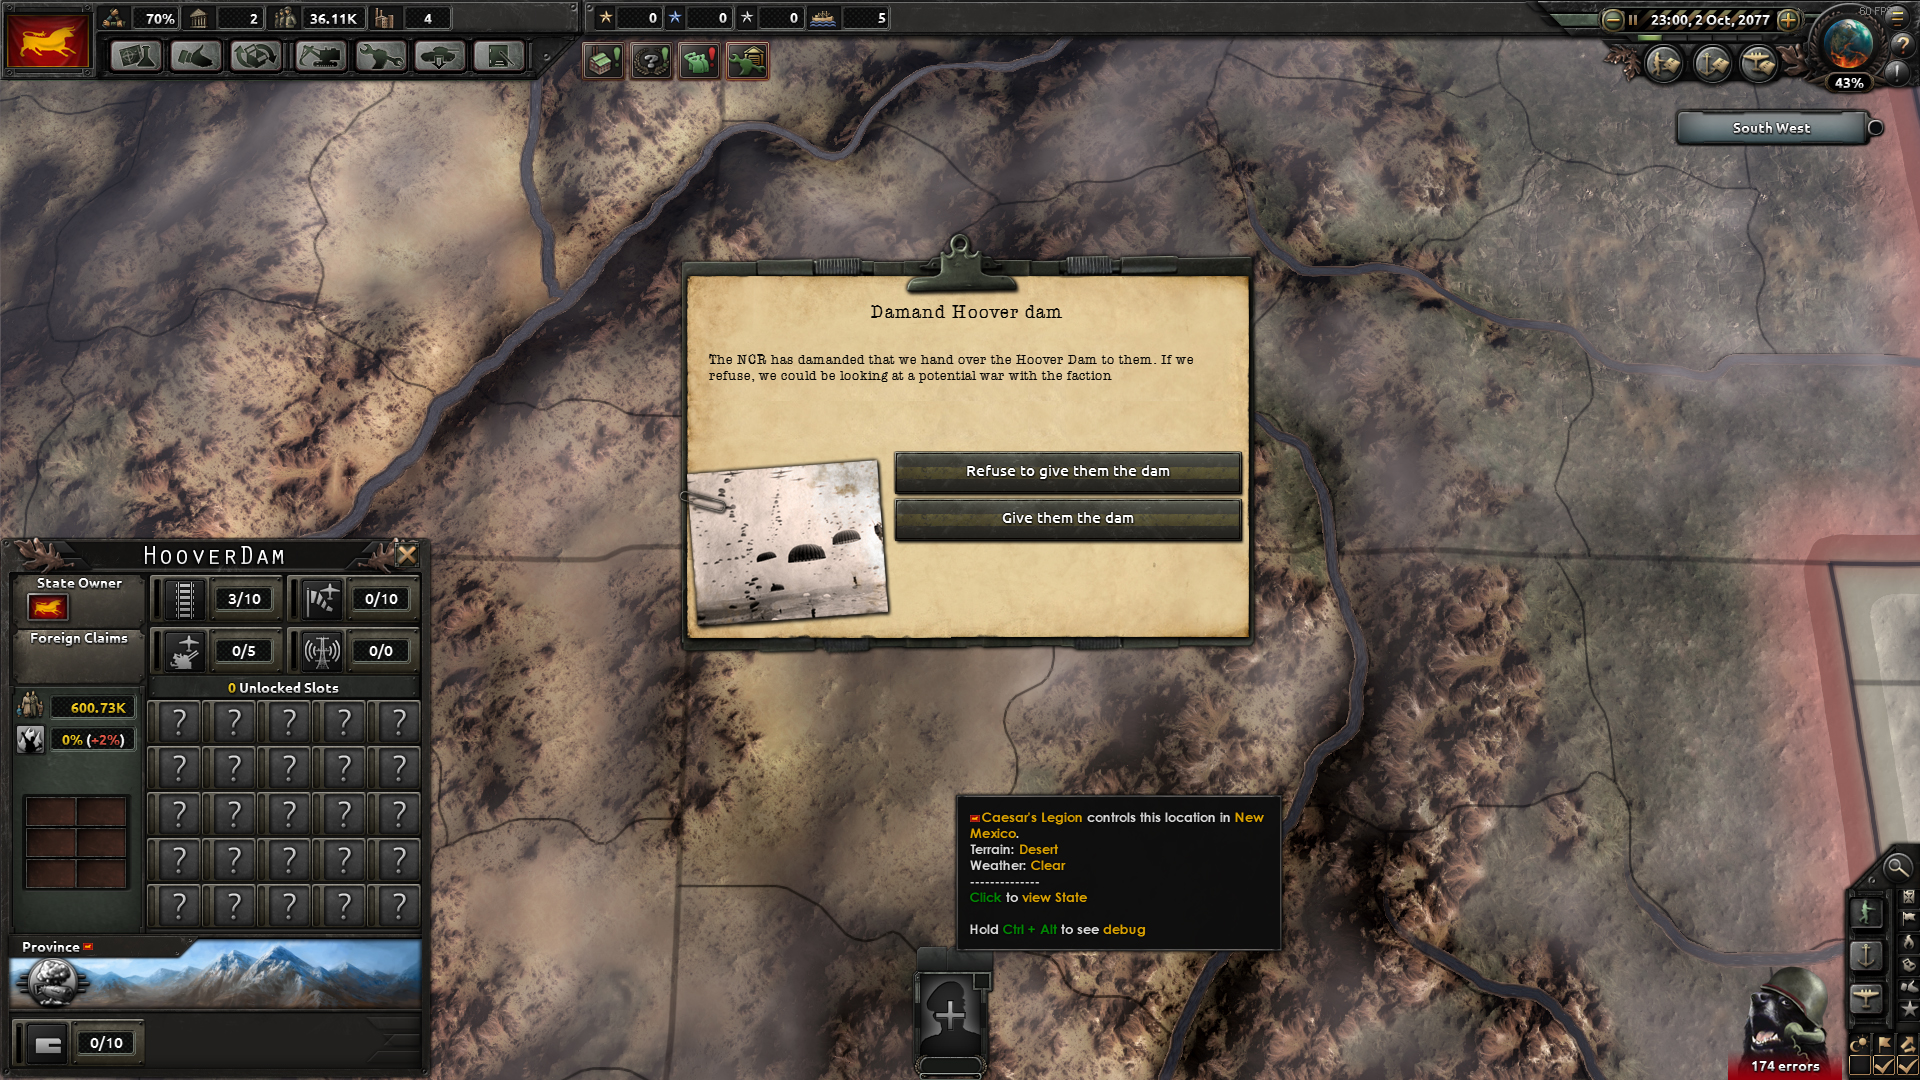 Demand Hoover Dam image - Hearts of Iron IV: Nuclear